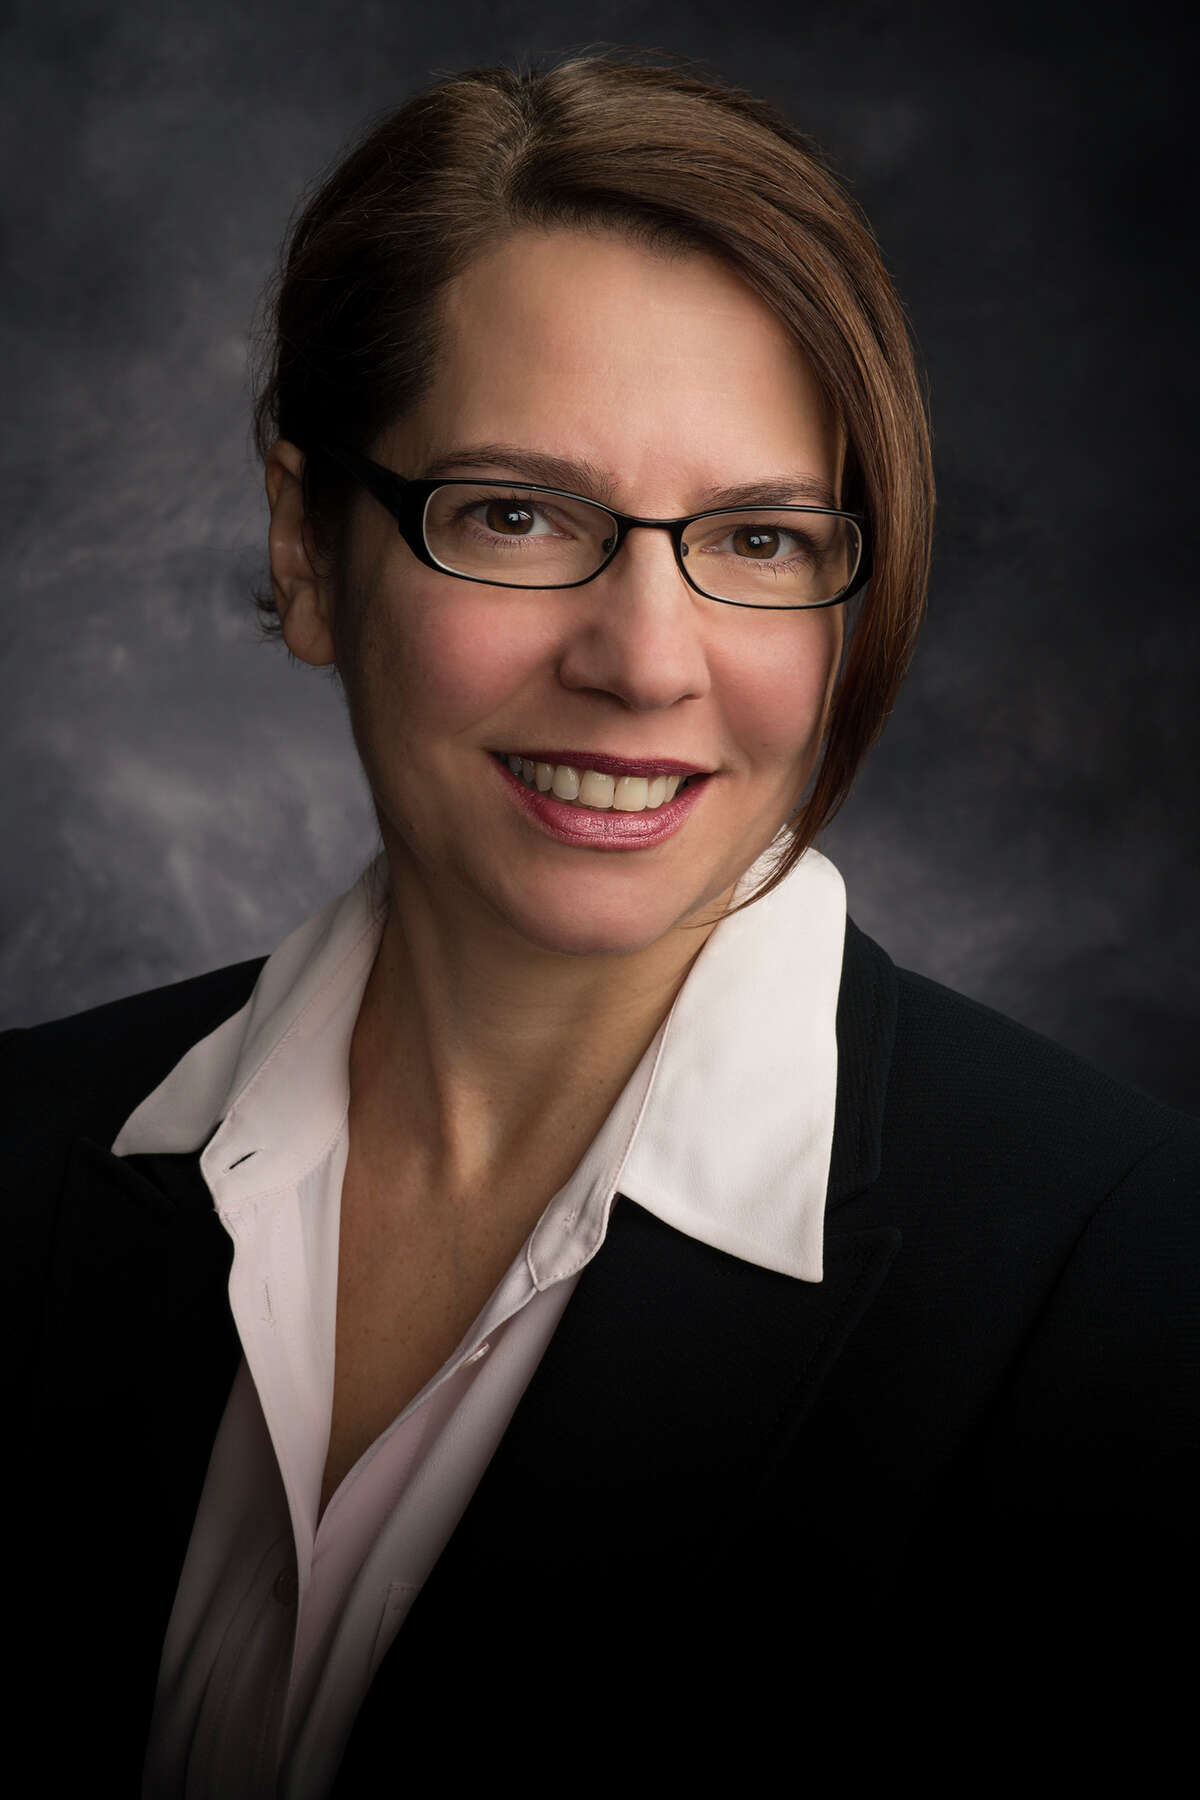 Rowena Rosenblum-Bergmans, the Vice President of Population Health for the Western Connecticut Health Network, is leading the organizationâÄôs accountable care organization that aims to improve quality and reduced costs using a collaborative approach to health care.